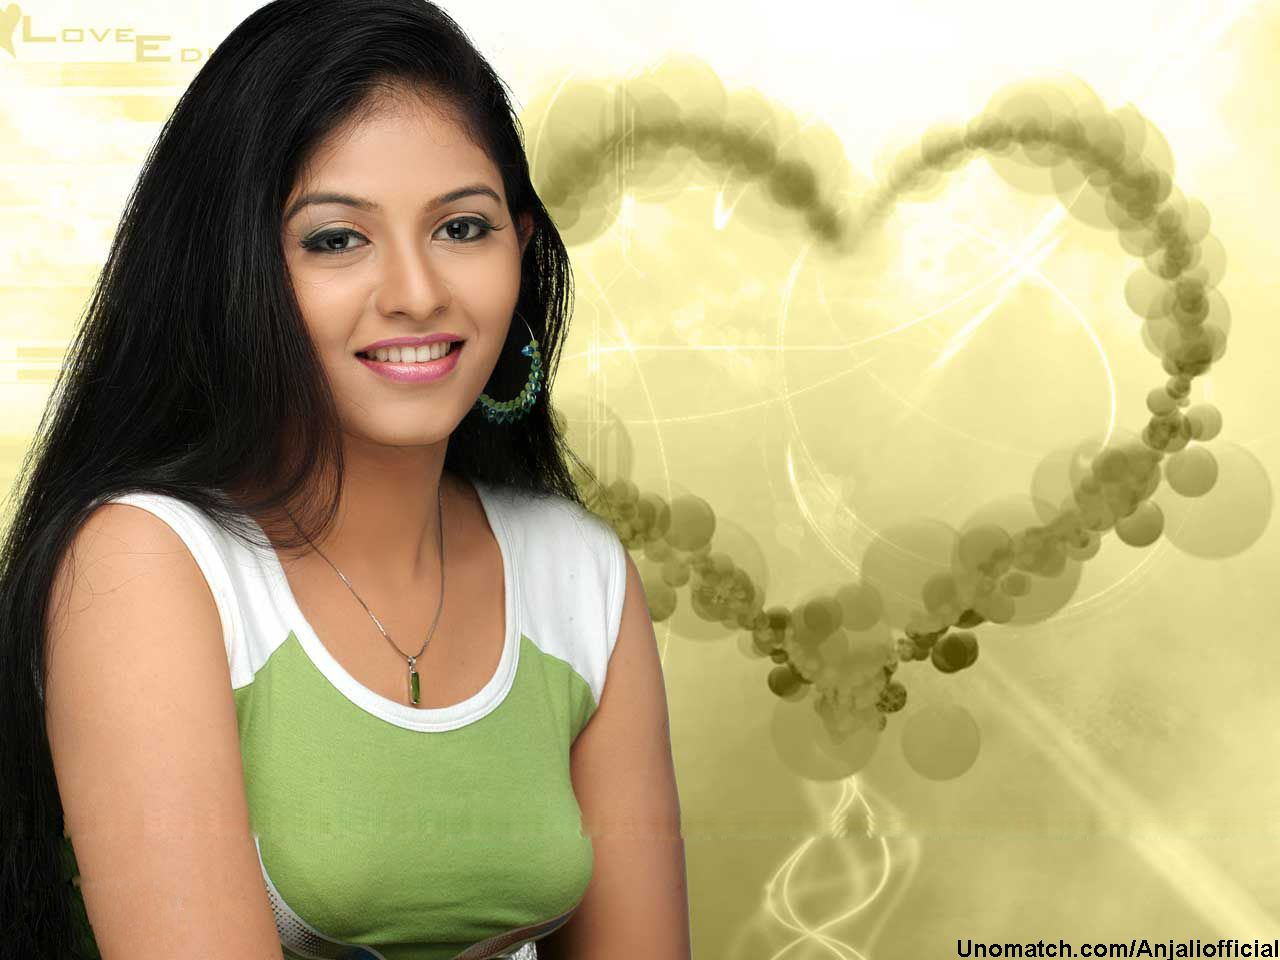 anjali is an indian film actress and model, who predominantly